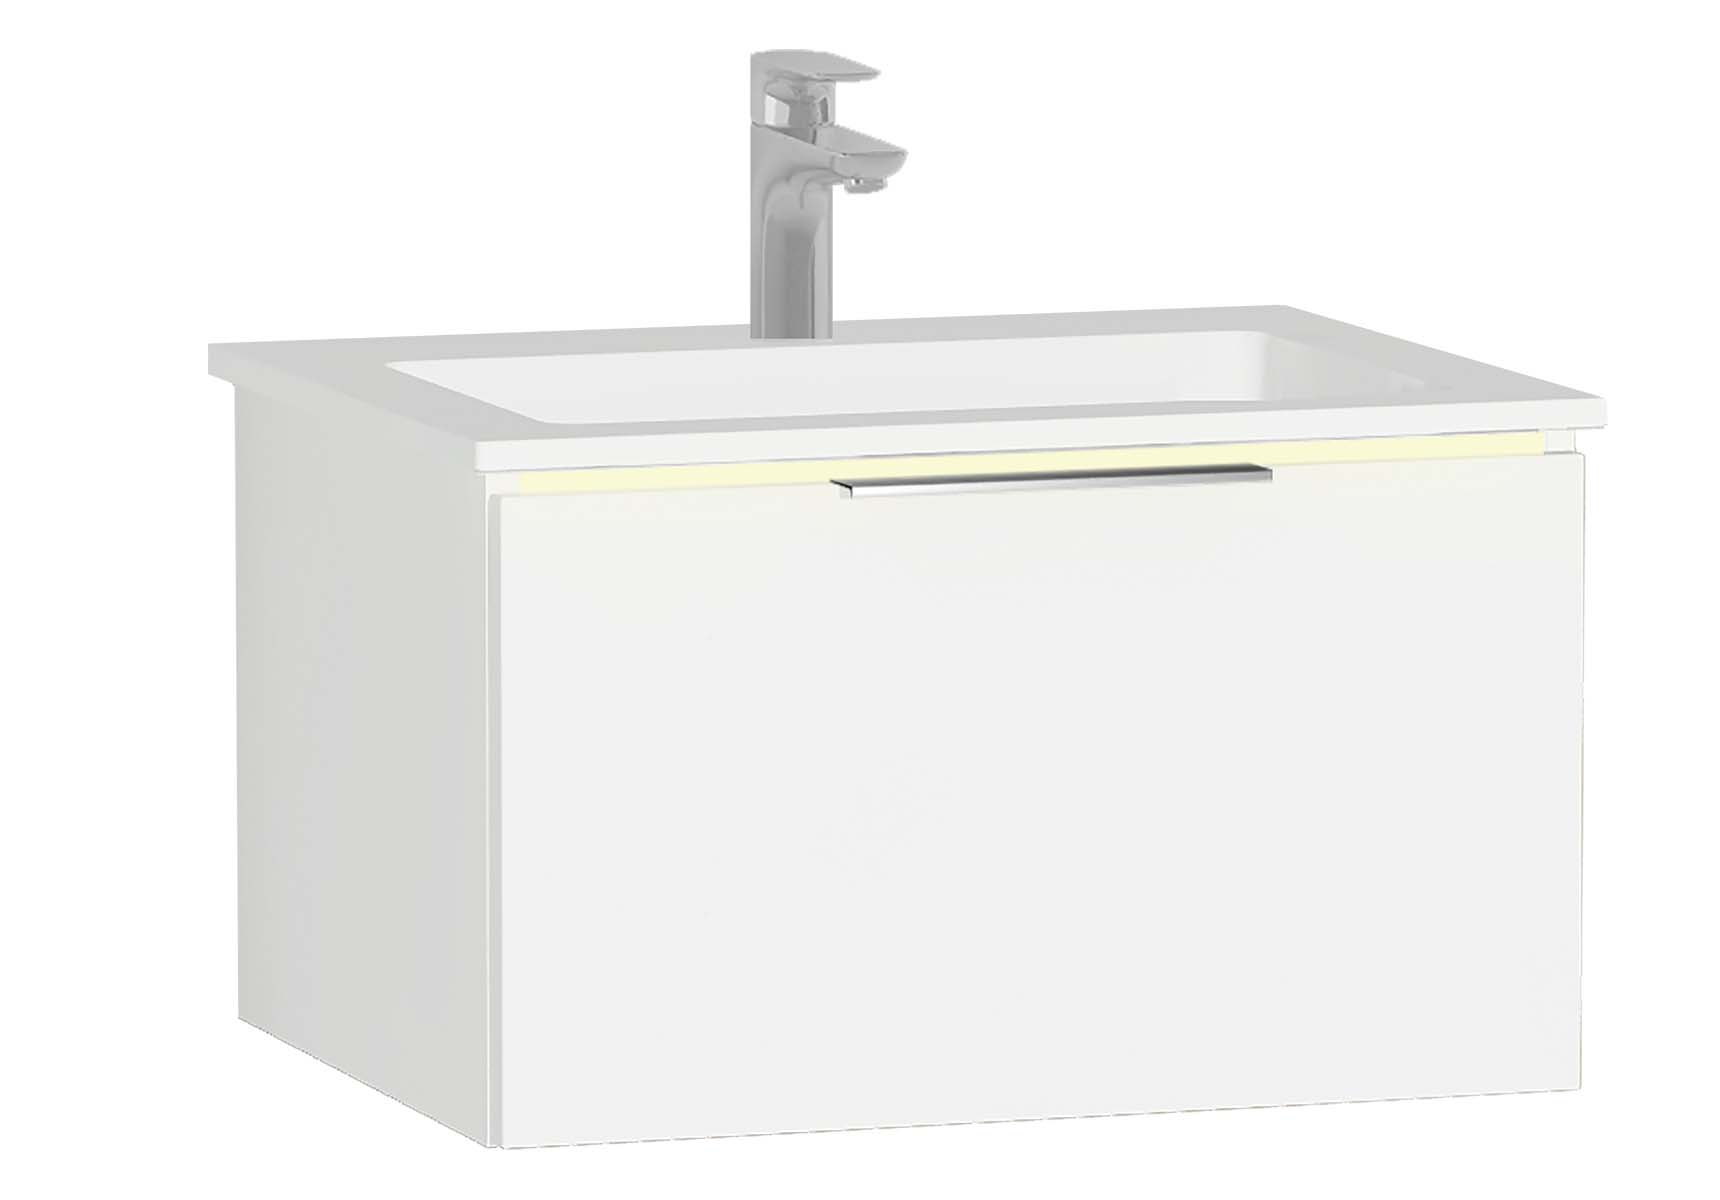 Central Washbasin Unit with 1 drawer, 60 cm, White High Gloss, Infinit Washbasin, Led